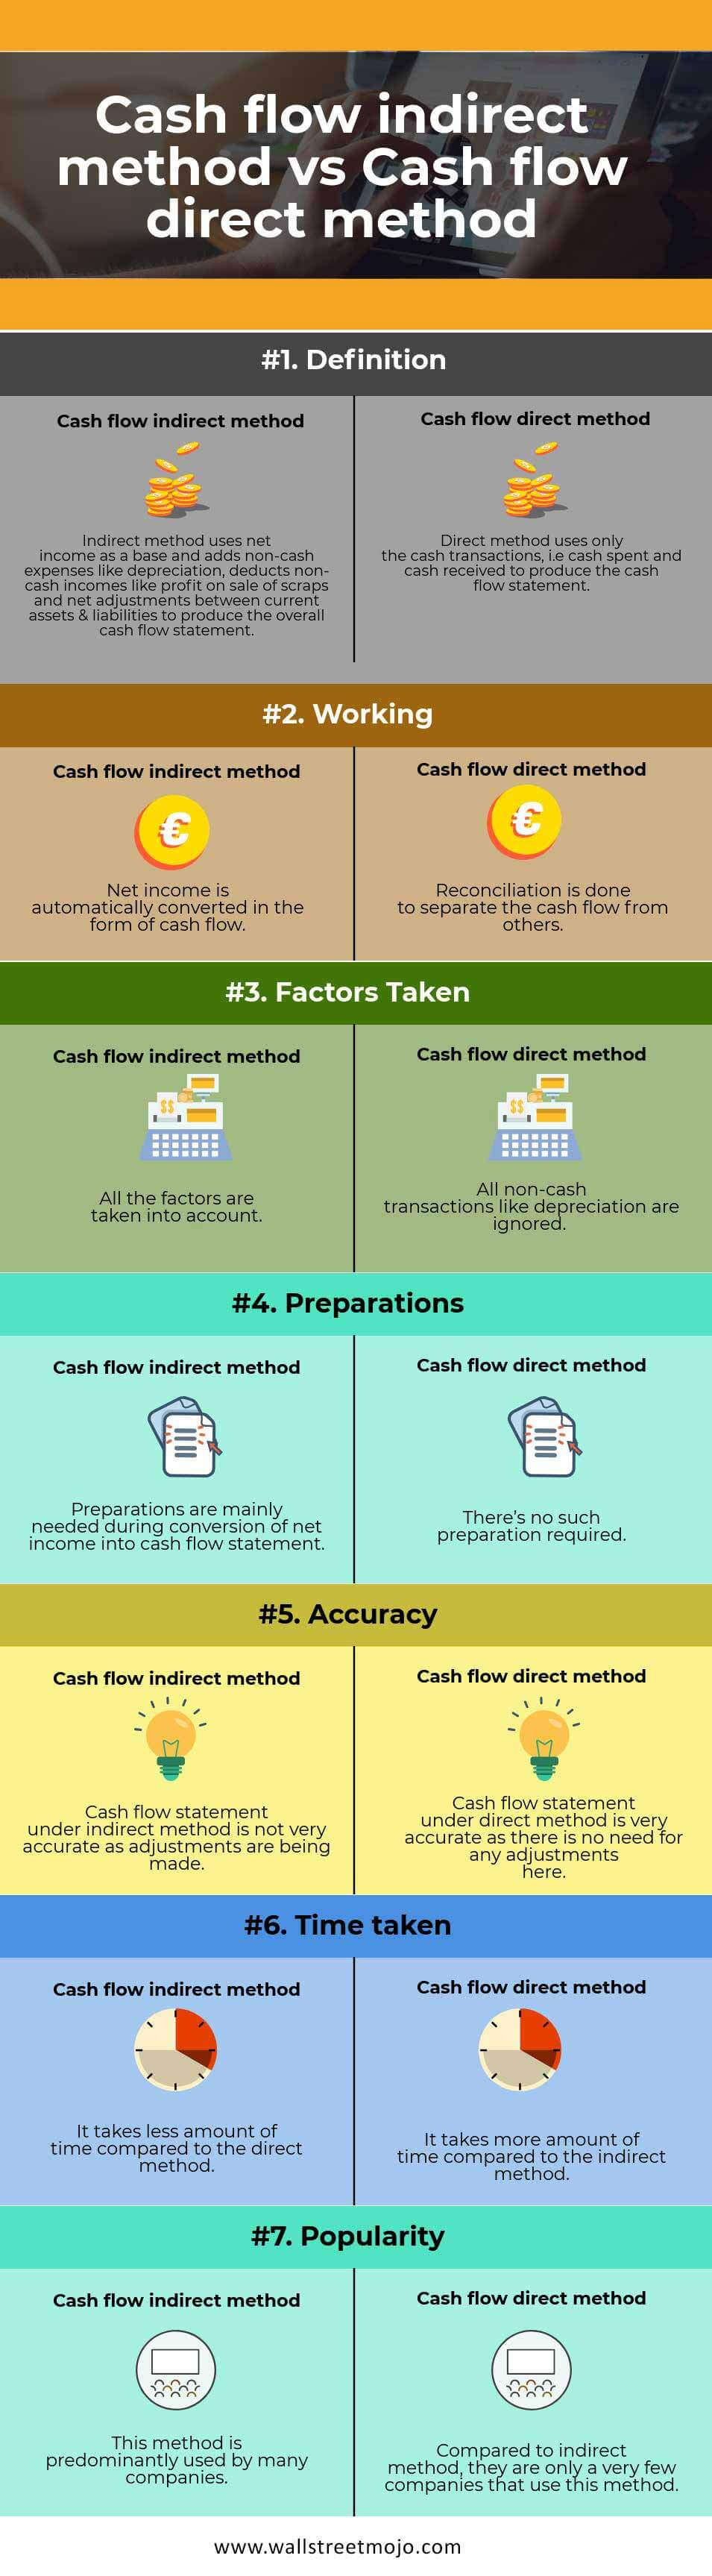 Cash-flow-indirect-method-vs-Cash-flow-direct-method